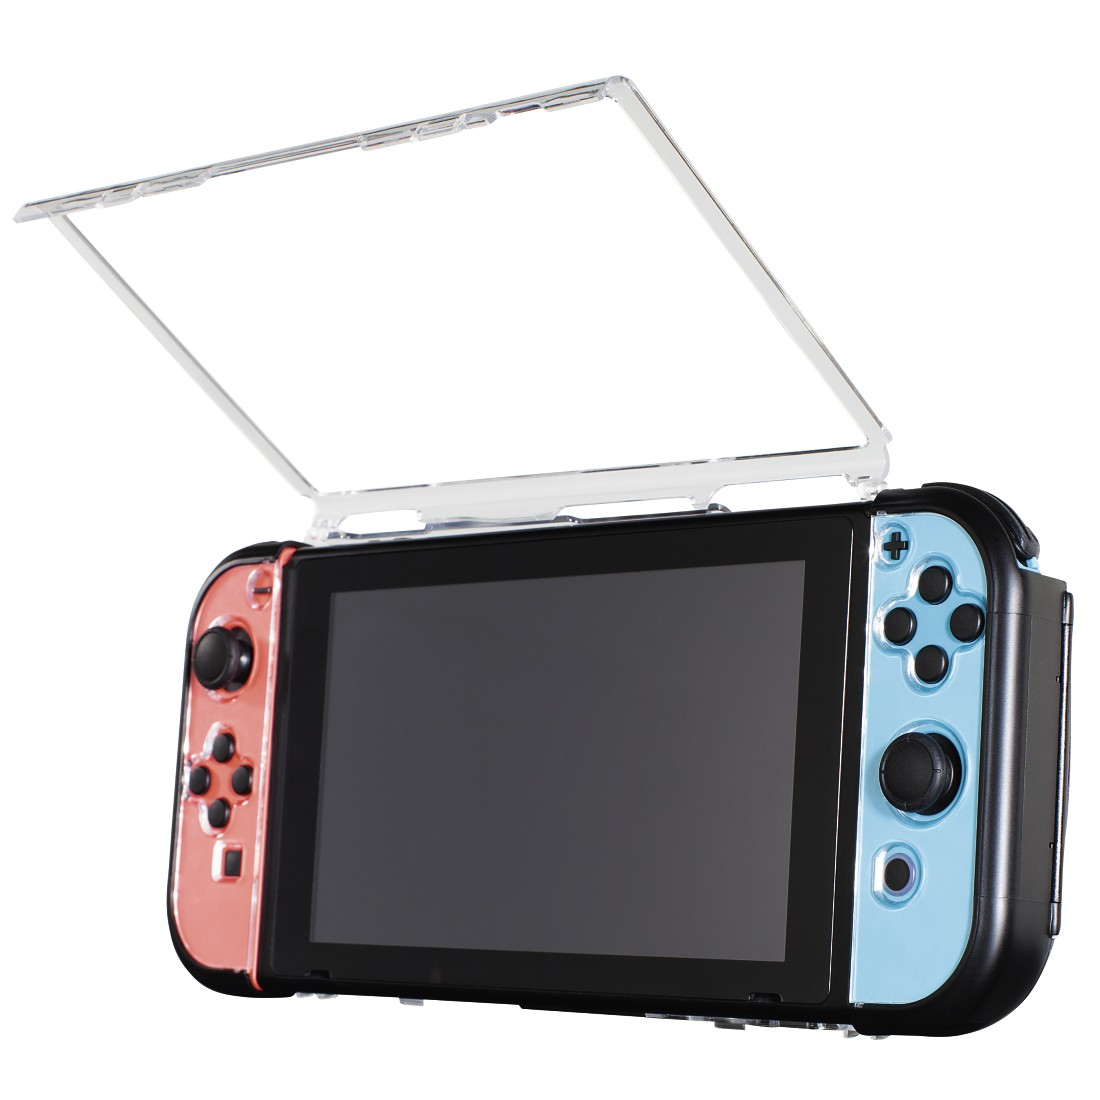 awx High-Res Appliance - Hama, Hardcover pentru Nintendo Switch, 3 buc., transparent